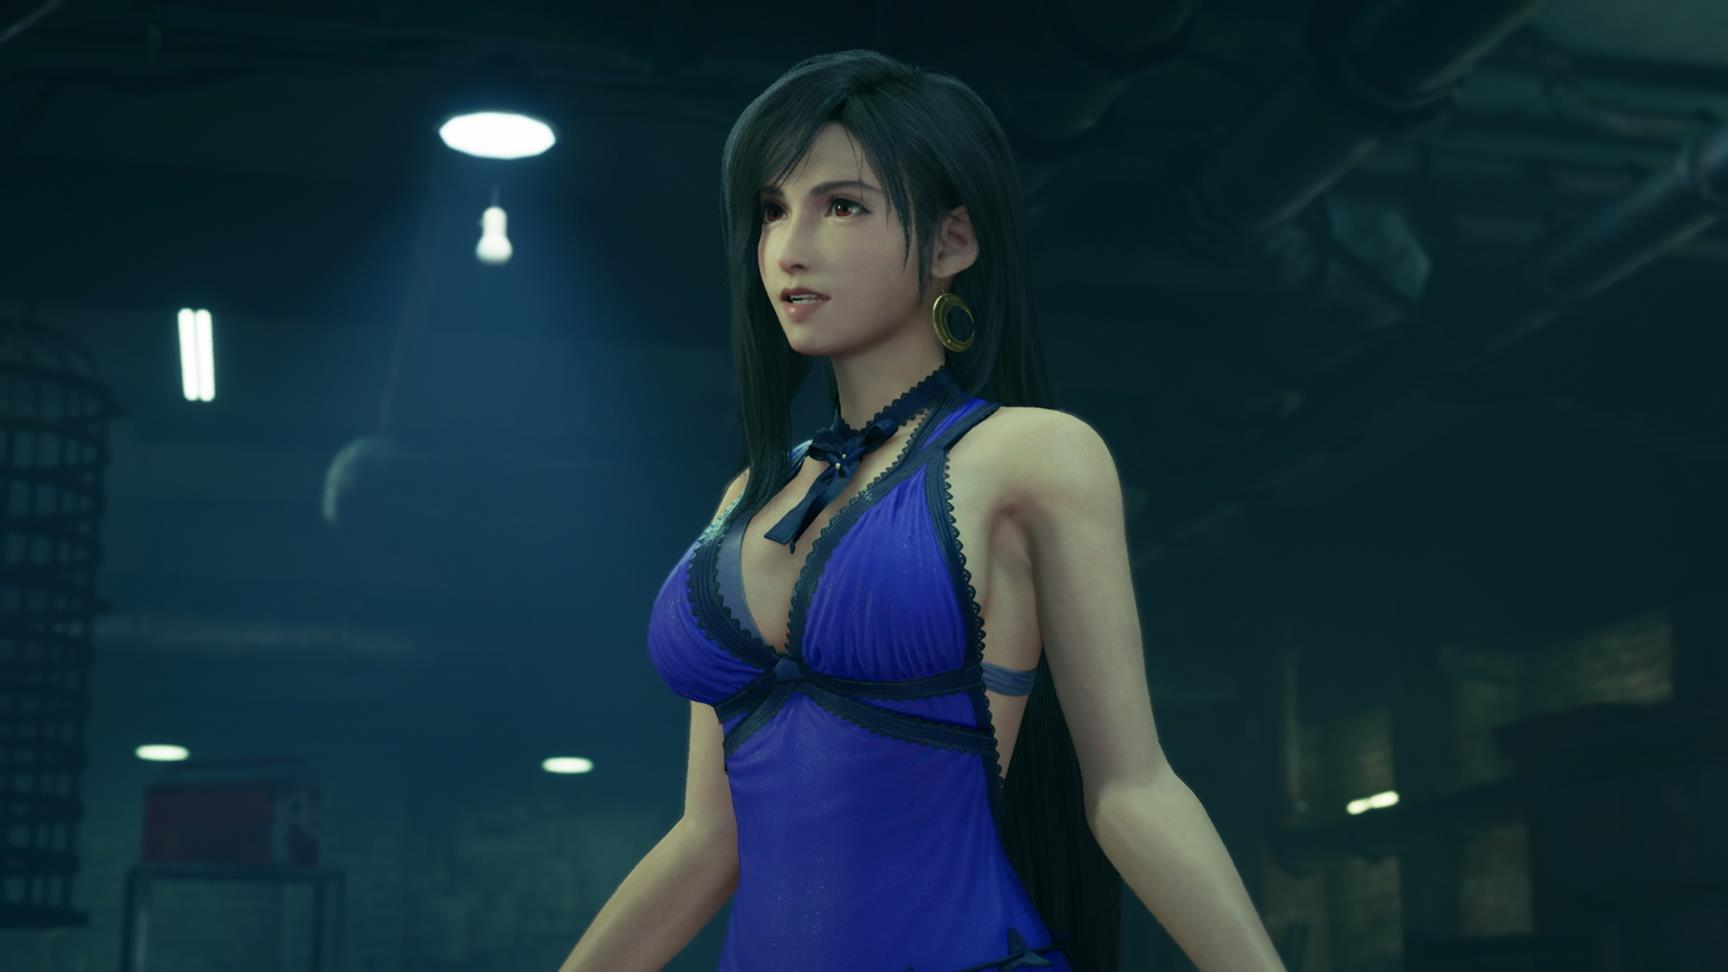 El trailer de Final Fantasy 7 Remake aparentemente confirma la versión para PC 15